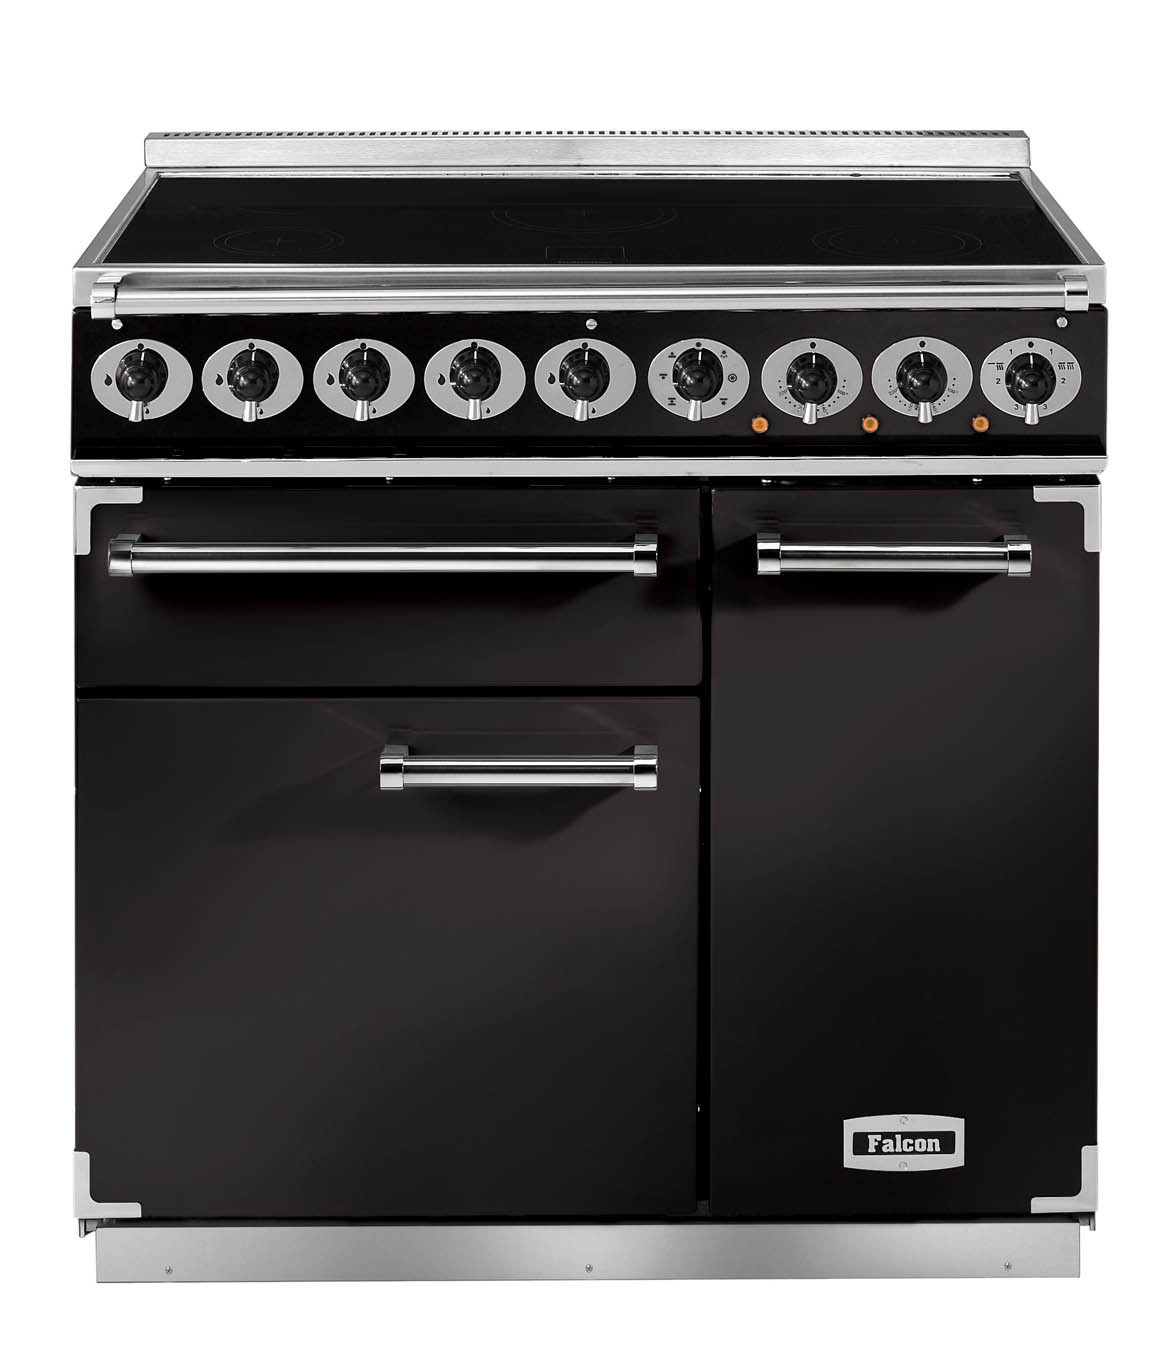 Falcon Deluxe 900 Induction Black/Chrome Range Cooker